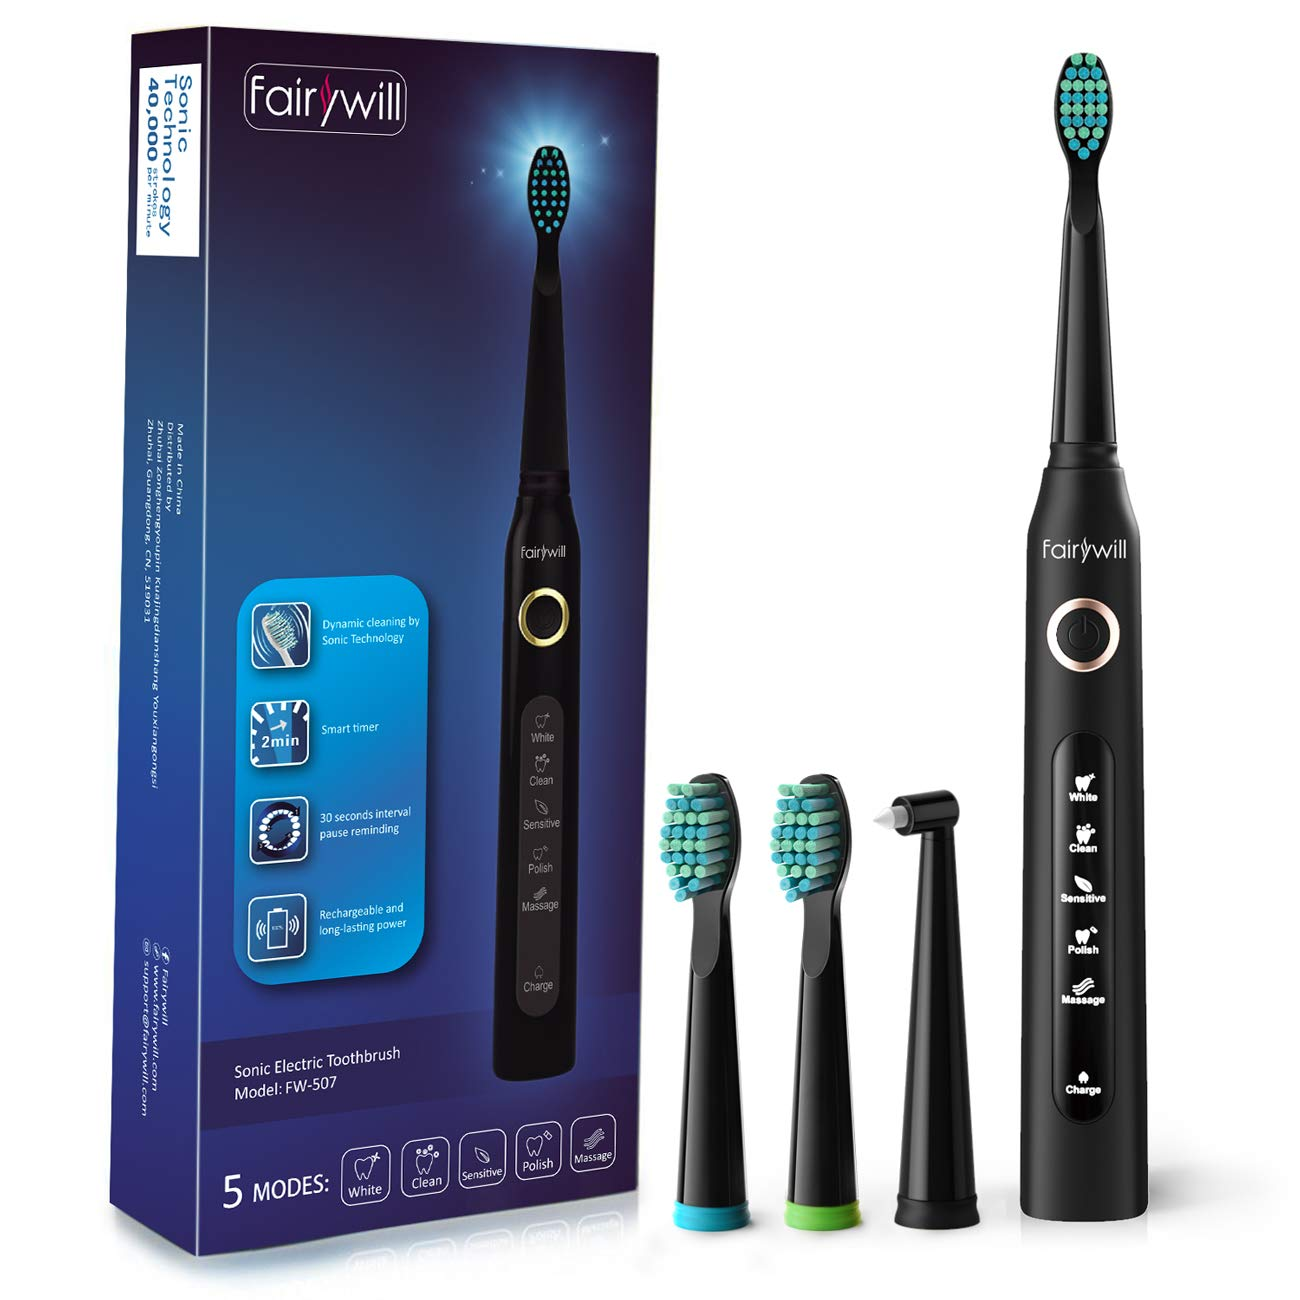 Electric Toothbrush Clean as Dentist Rechargeable Sonic Toothbrush with Smart Timer 4 Hours Charge Minimum 30 Days Use 5 Optional Modes Whitening Toothbrushes for Adults with 3 Brush Heads Black by Fairywill